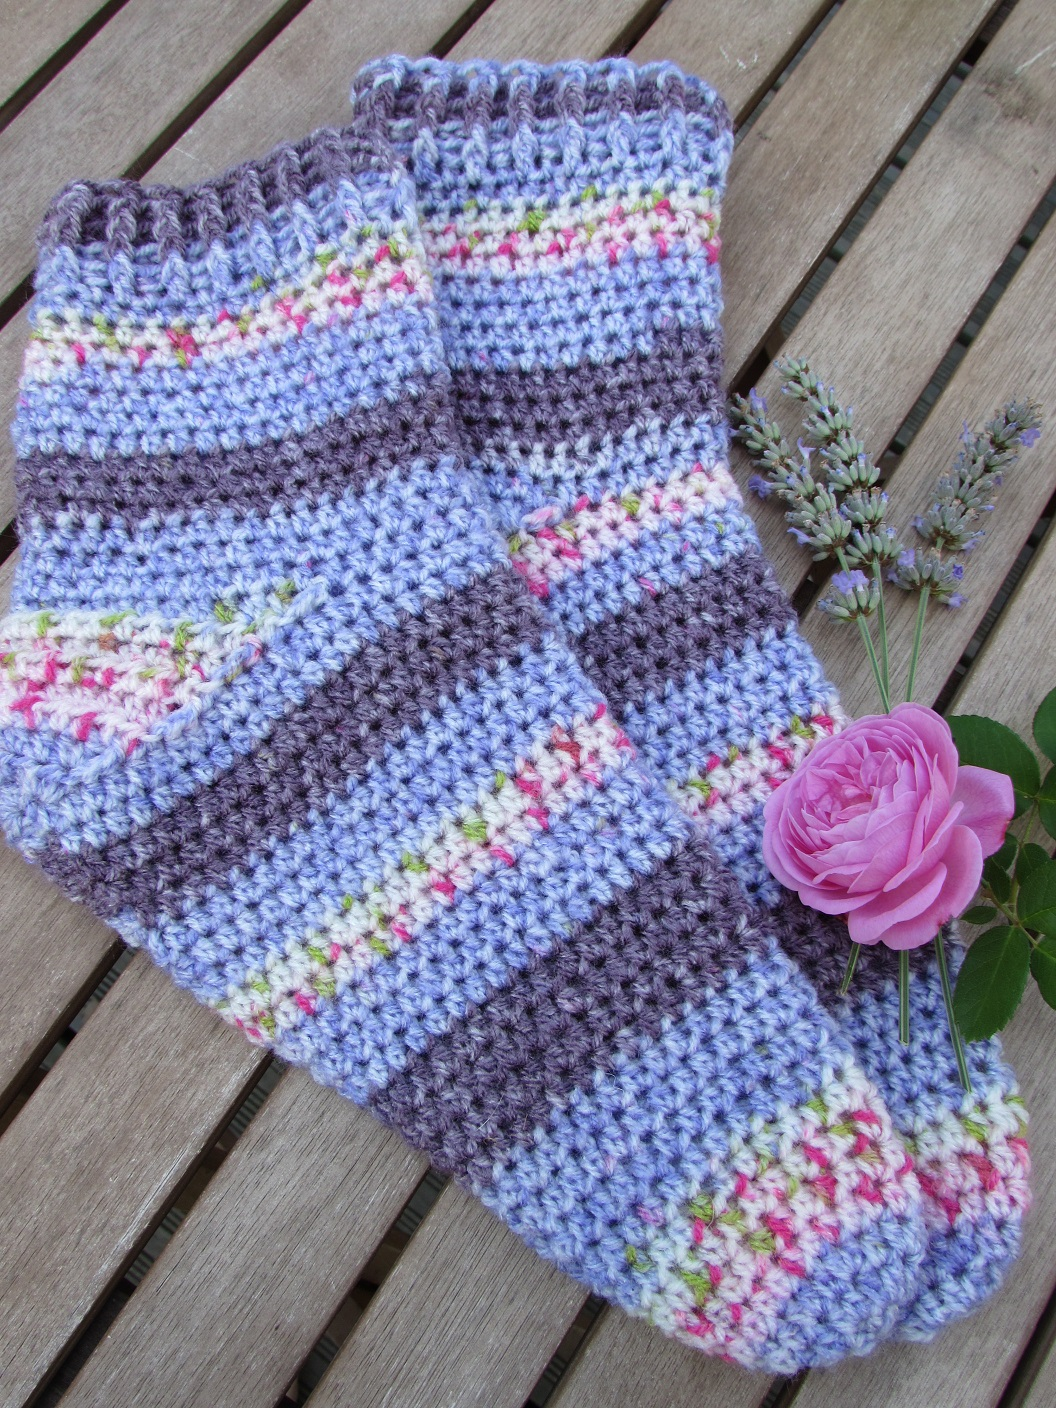 Quick%20%26%20Easy%20Toe%20Up%20Sock%20Crochet%20Pattern